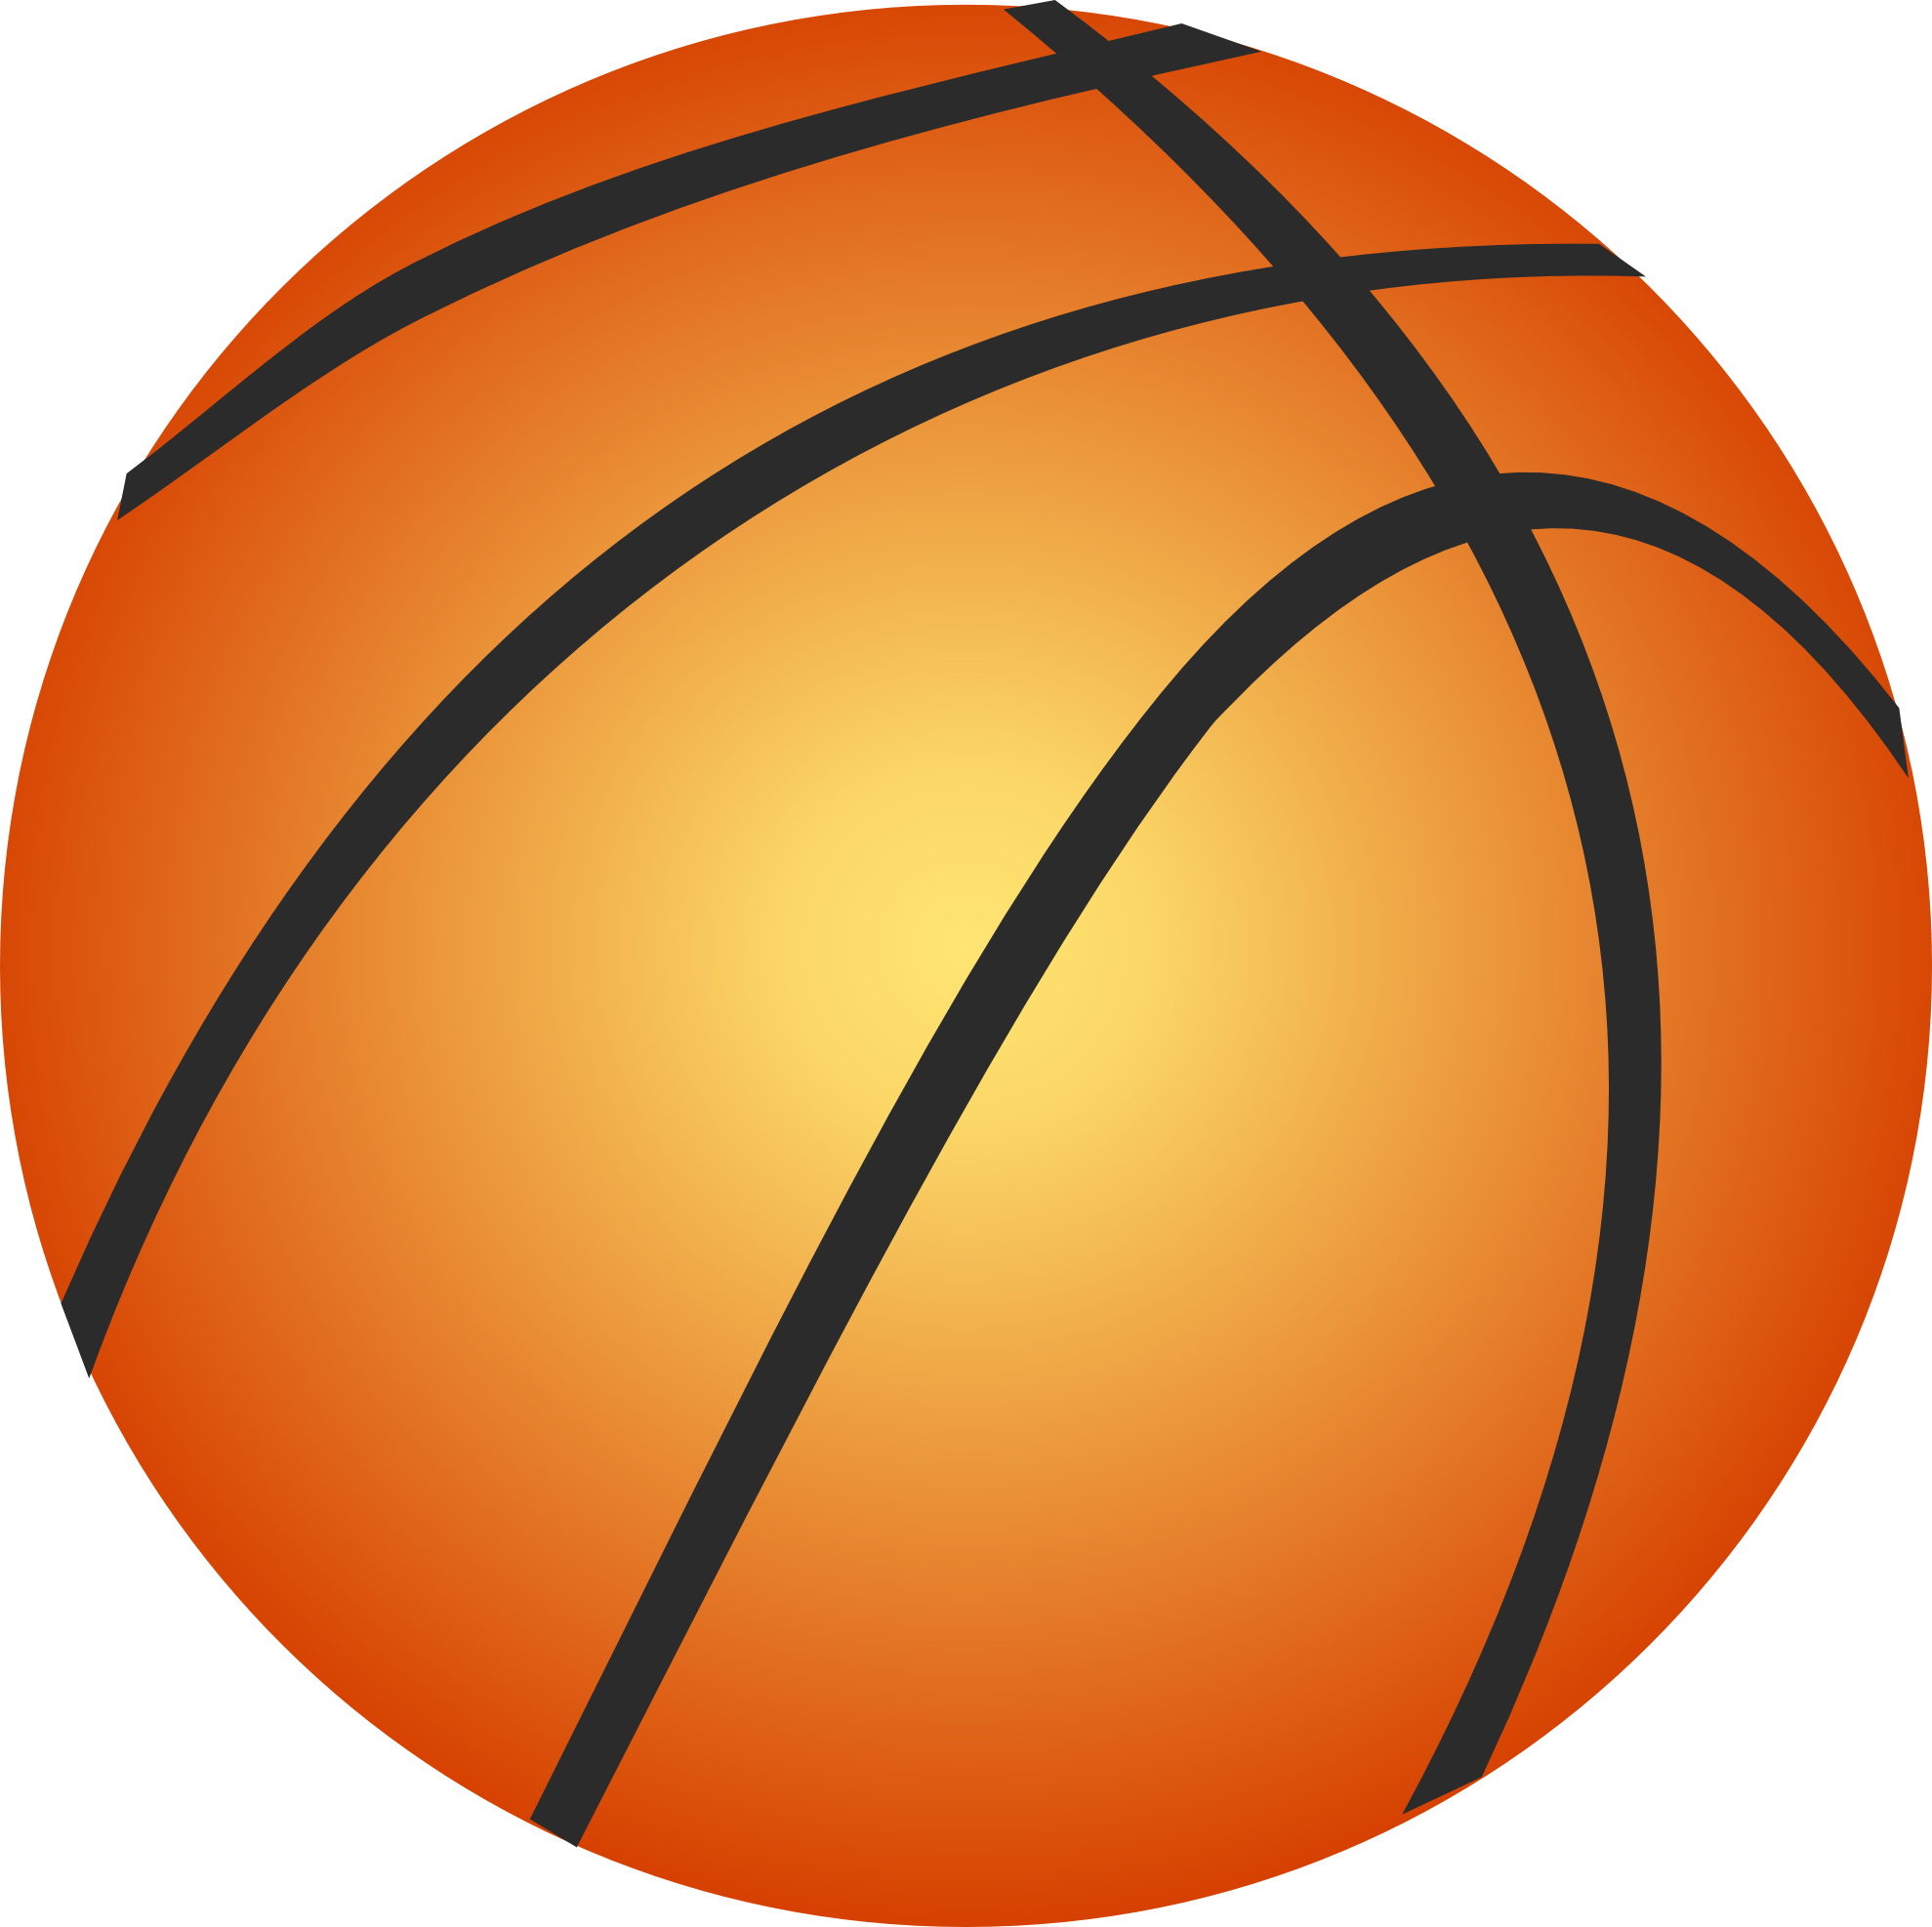 Basketball Ball Clip Art.